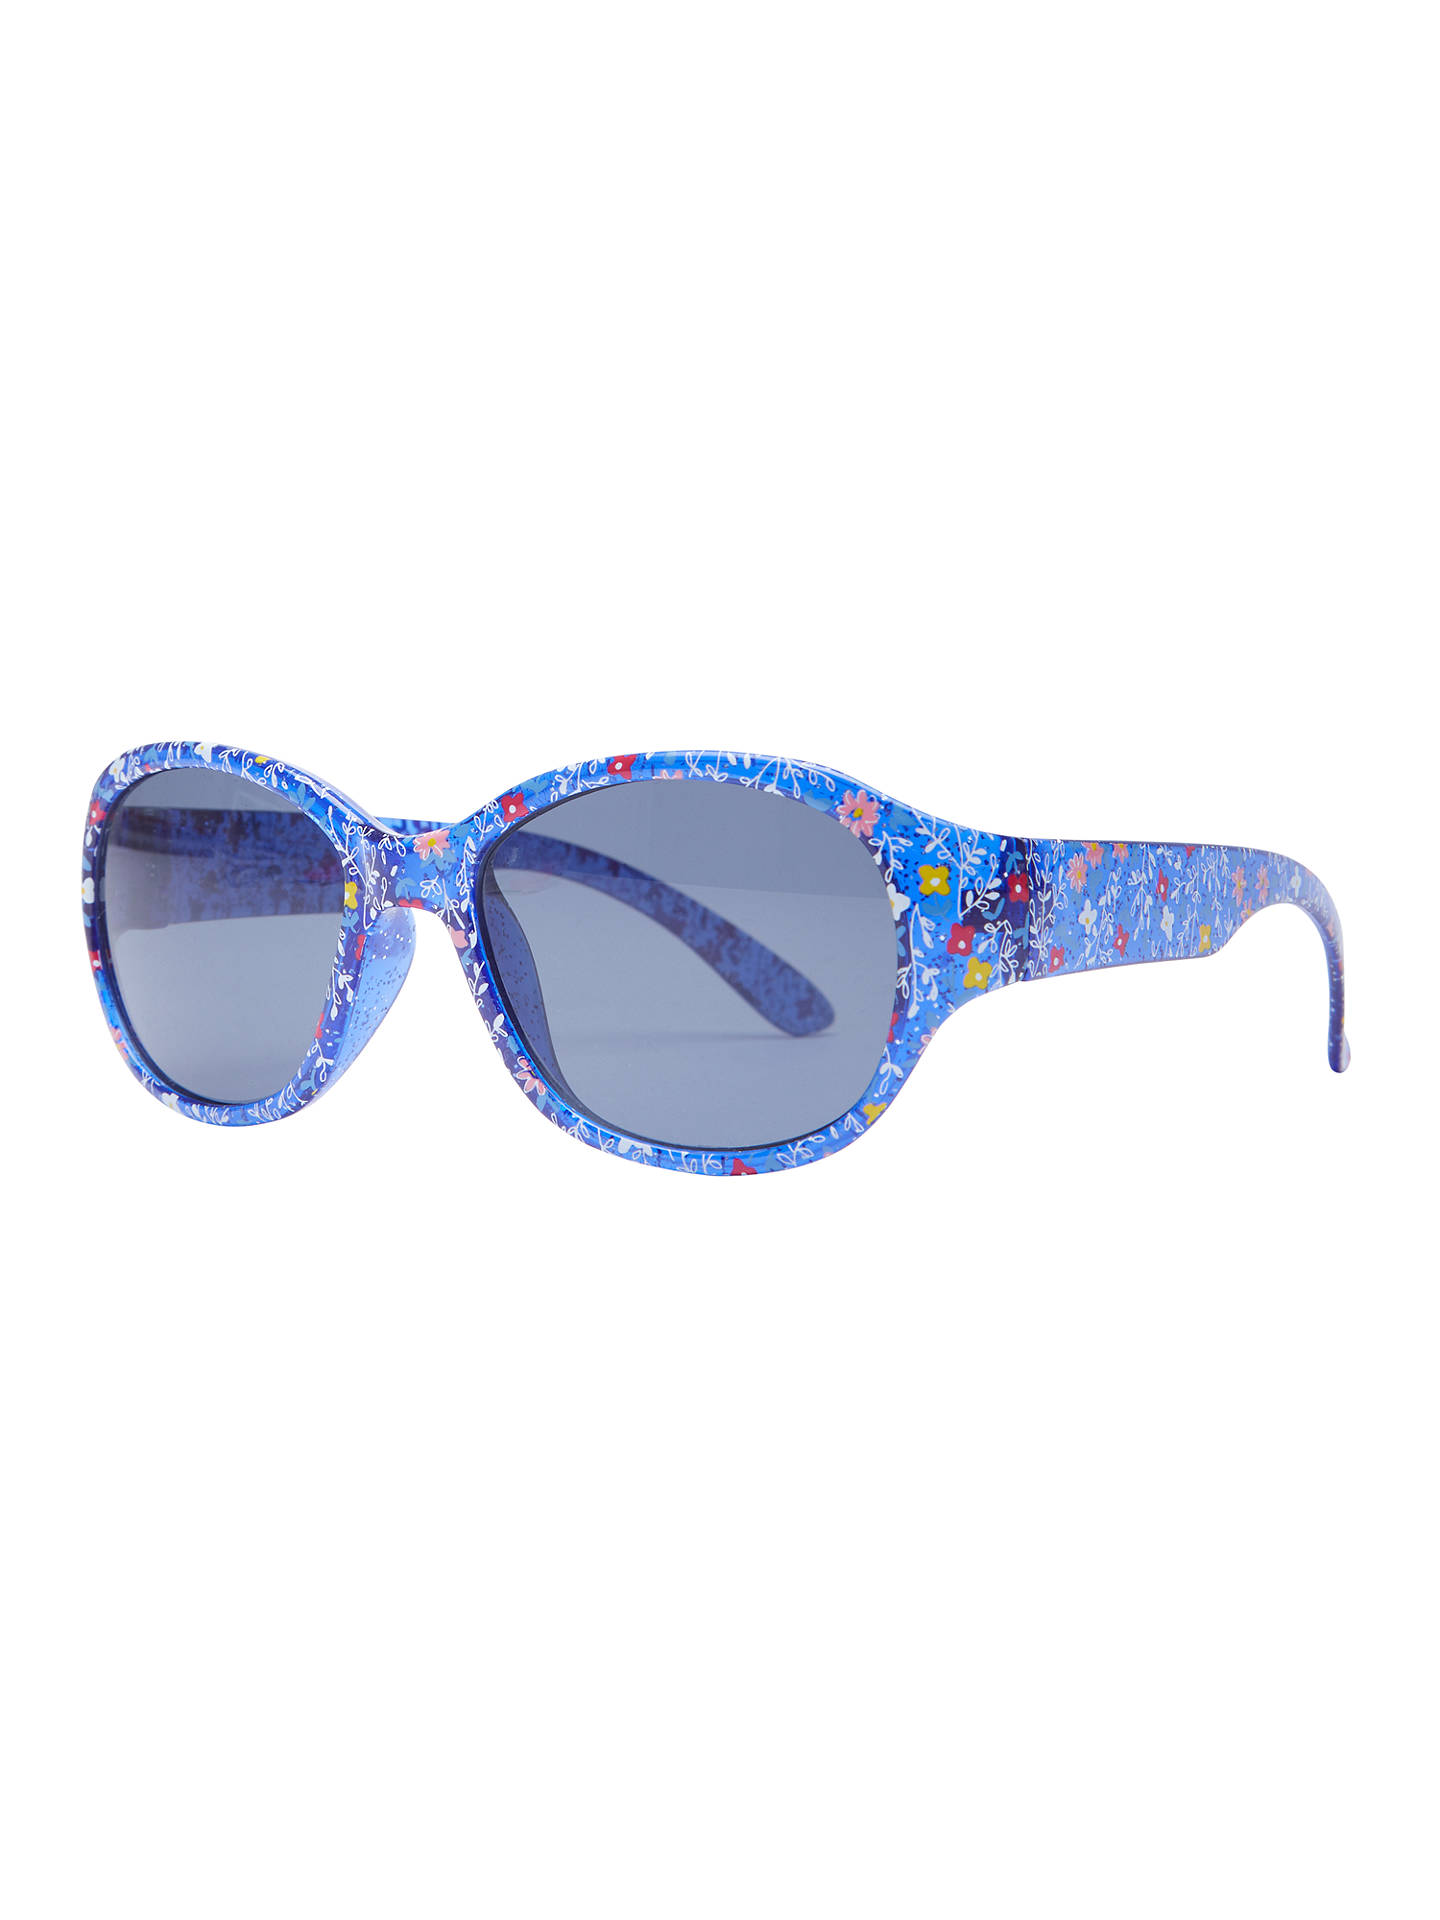 BuyJohn Lewis & Partners Children's Floral Floral Sunglasses, Navy Online at johnlewis.com